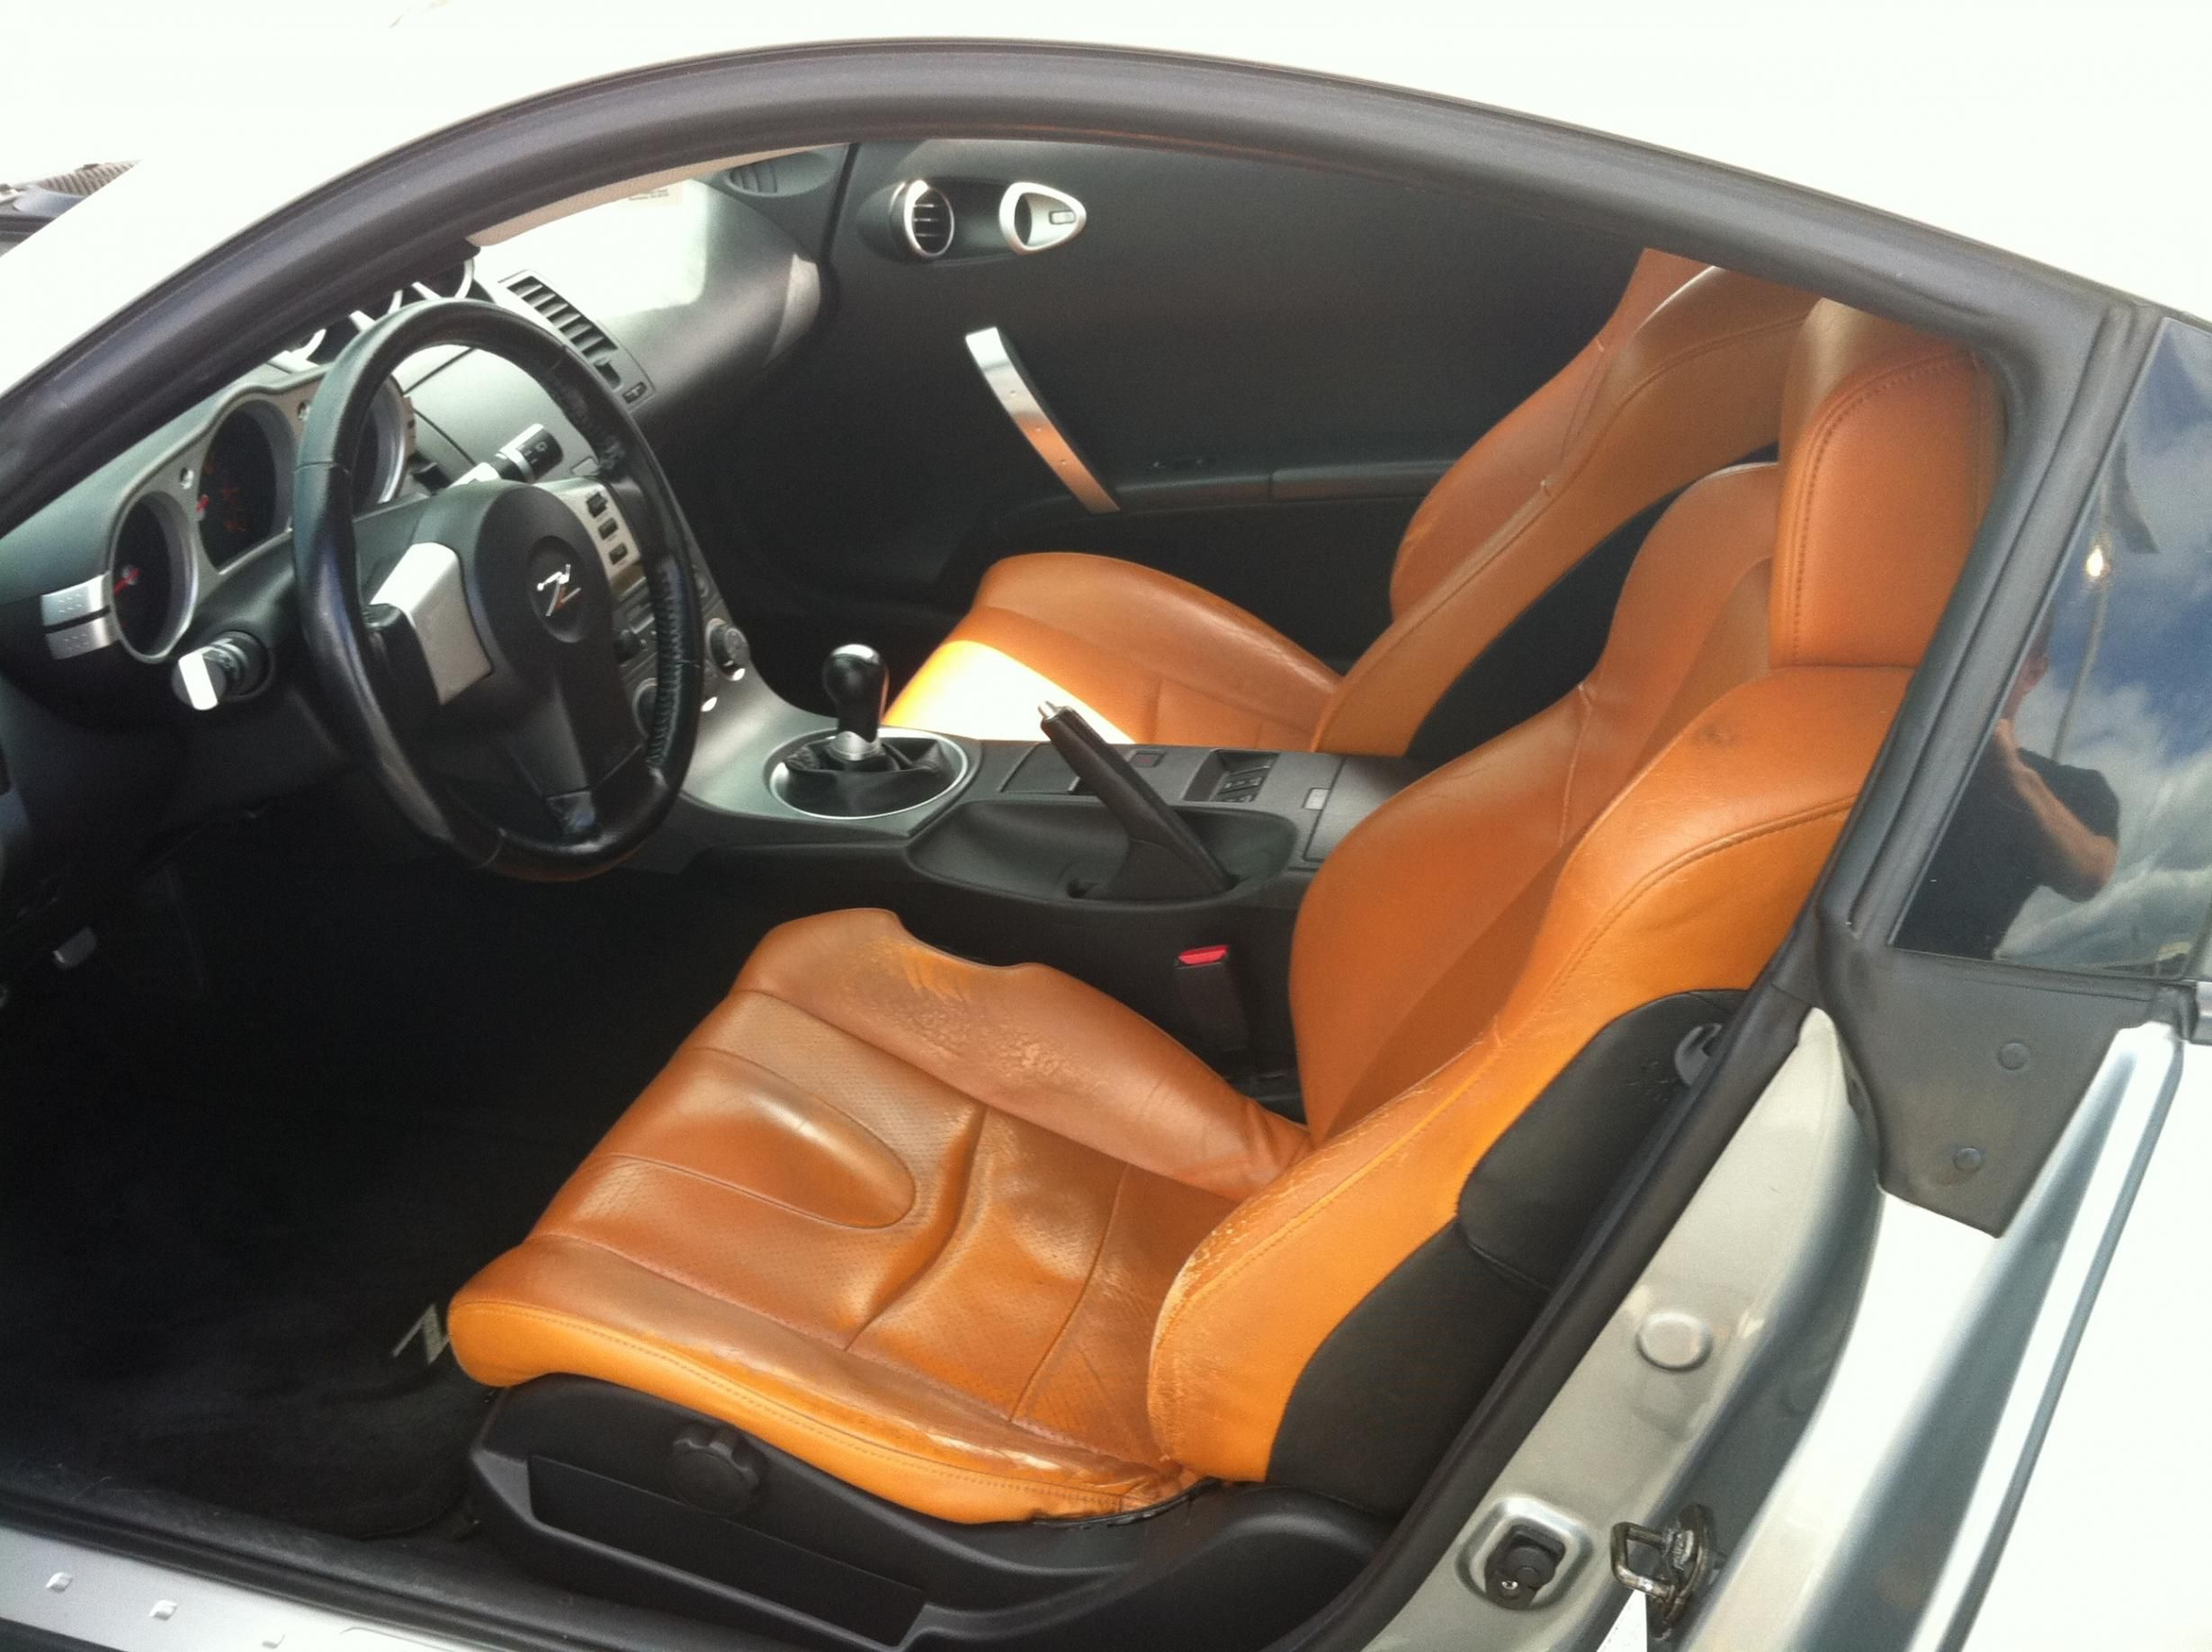 2003 350z silverstone with black orange brown interior seats grey auto addiction interiors. Black Bedroom Furniture Sets. Home Design Ideas